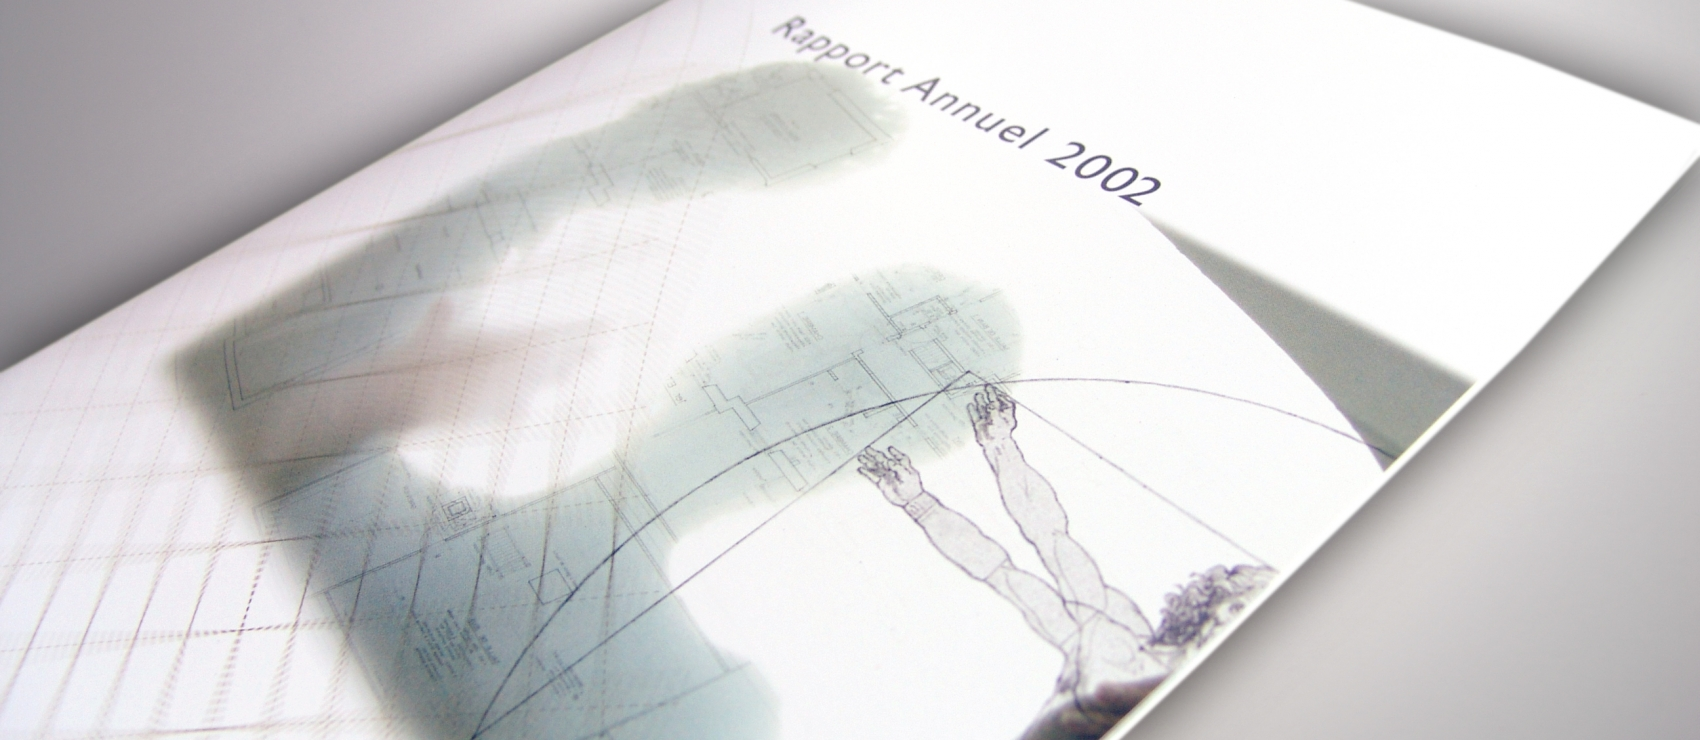 ANEC - Annual Report 2002